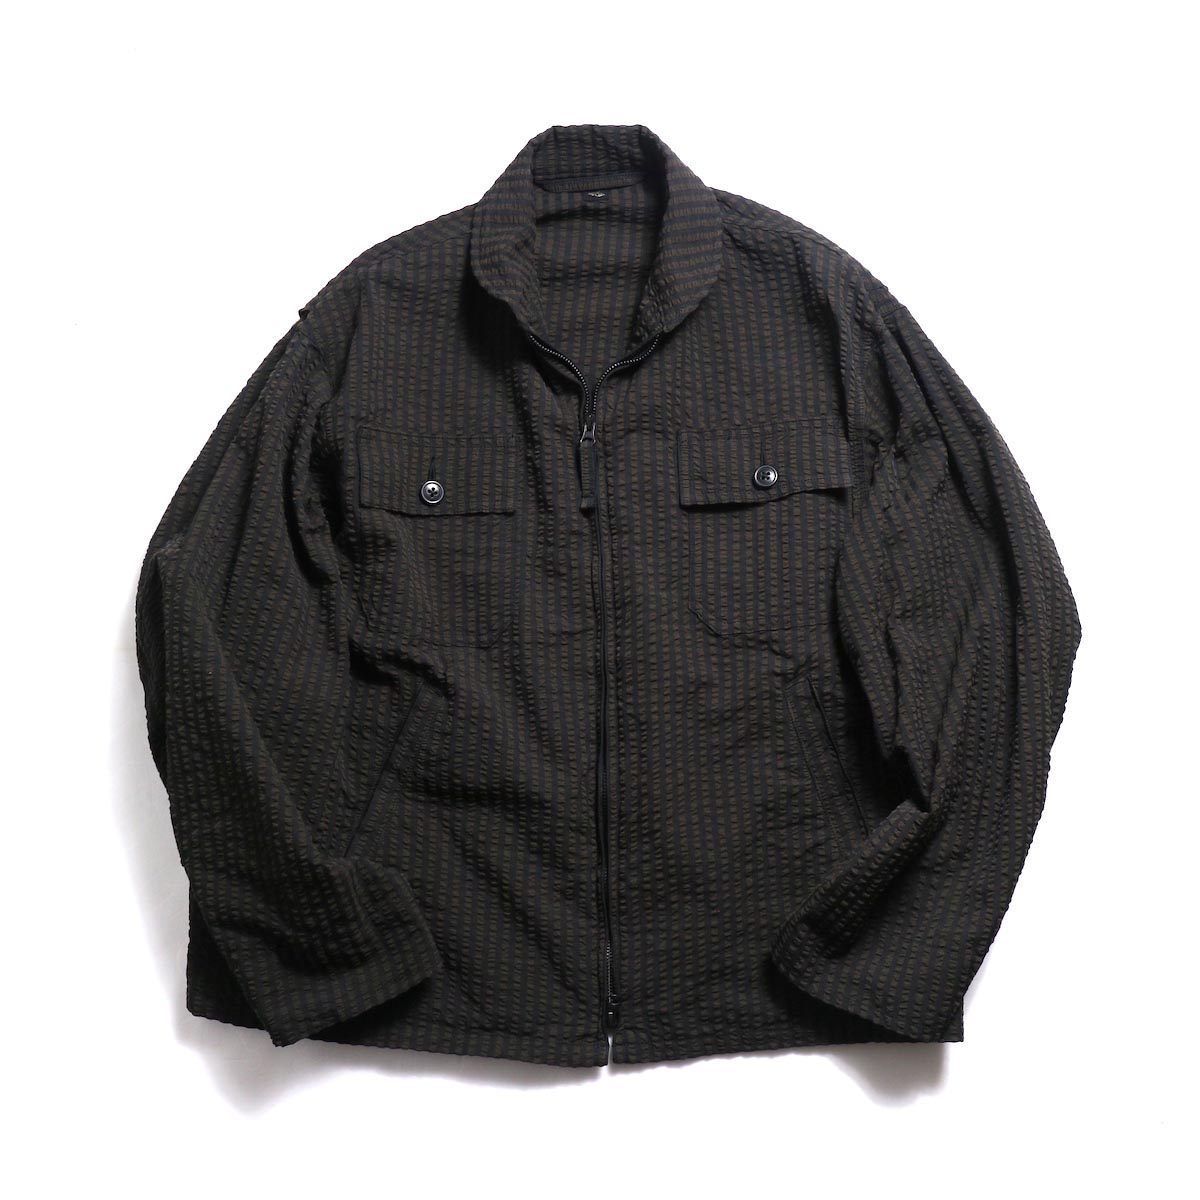 Kaptain Sunshine / Summer Flight Jacket -Black/Brown